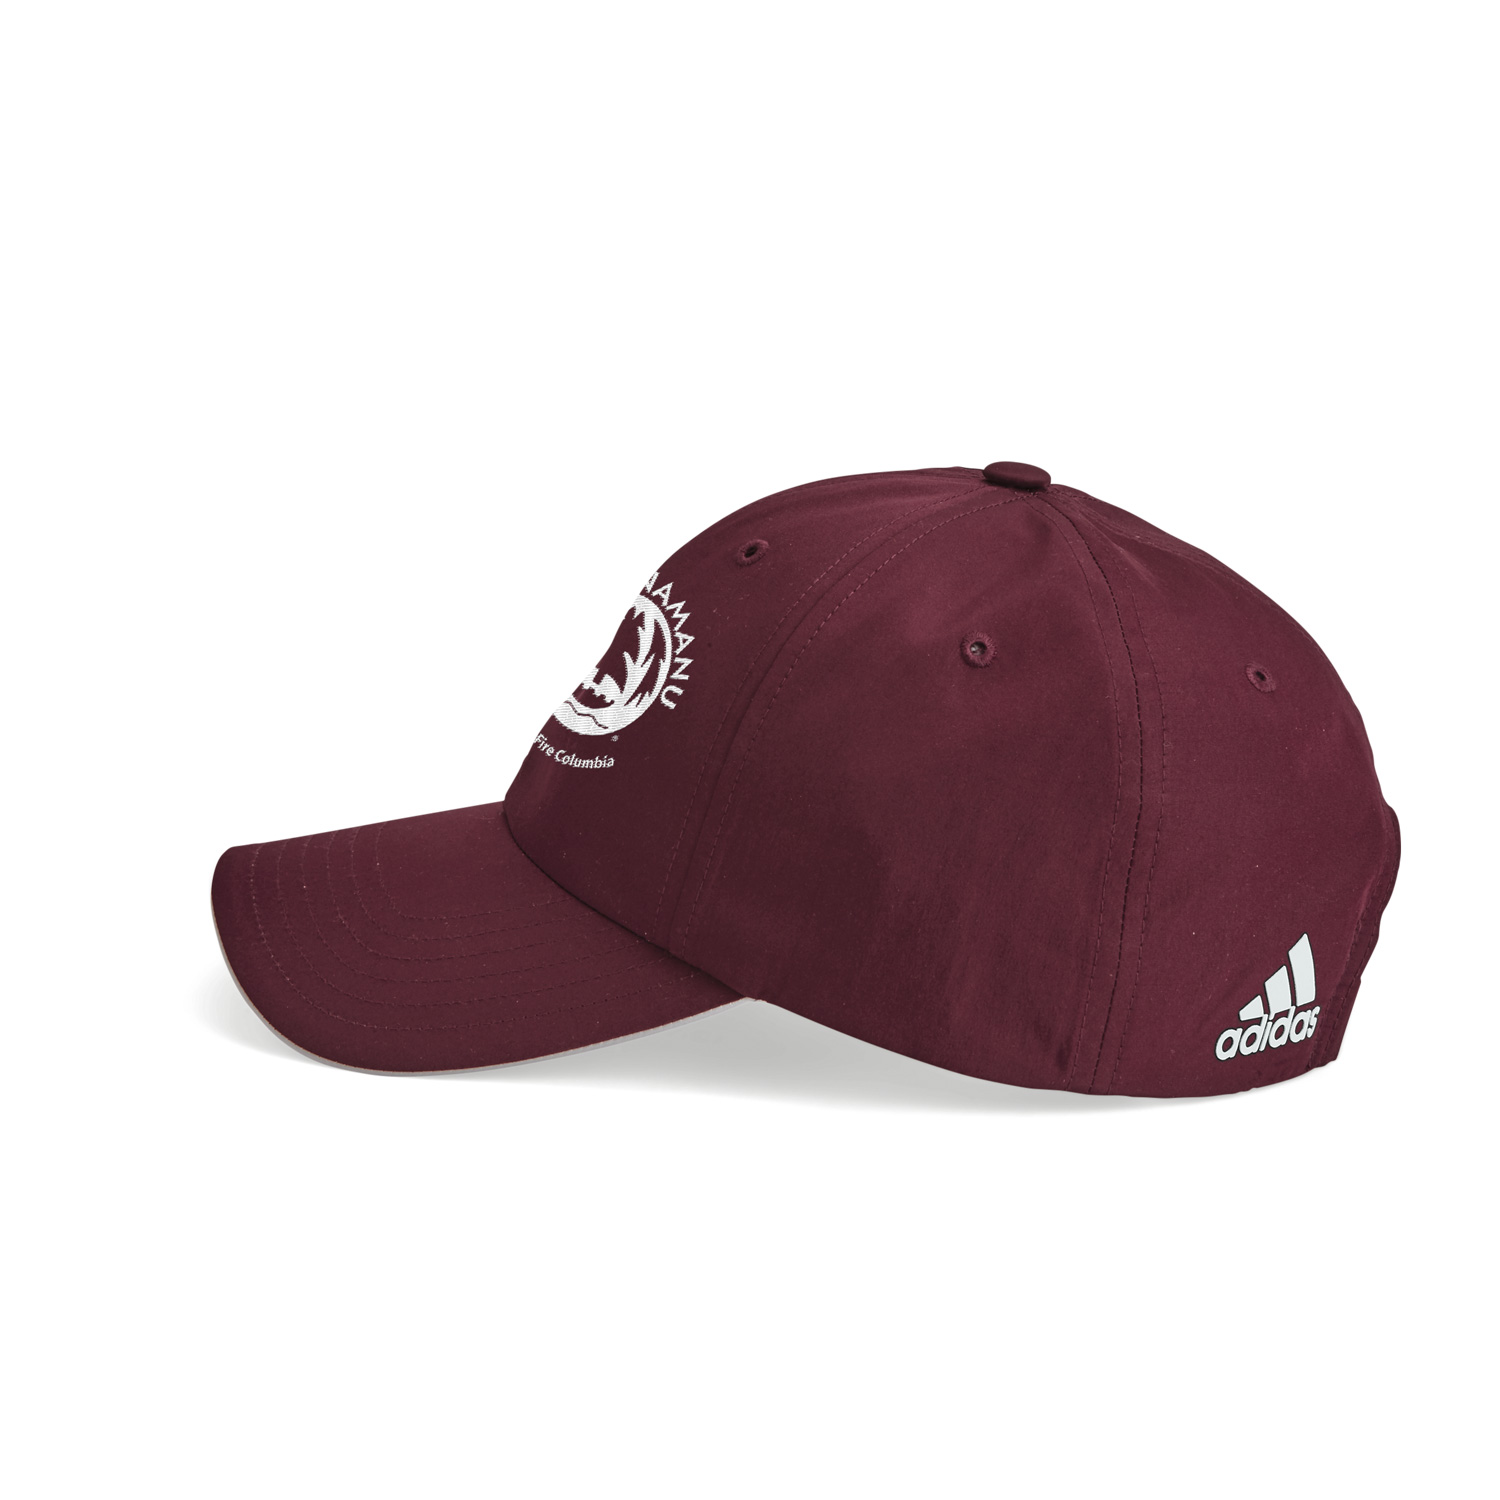 2cba88bee68b0 ... Adidas Performance Relaxed Poly Cap. Product image  Product image   Product image  Product image  Product image ...